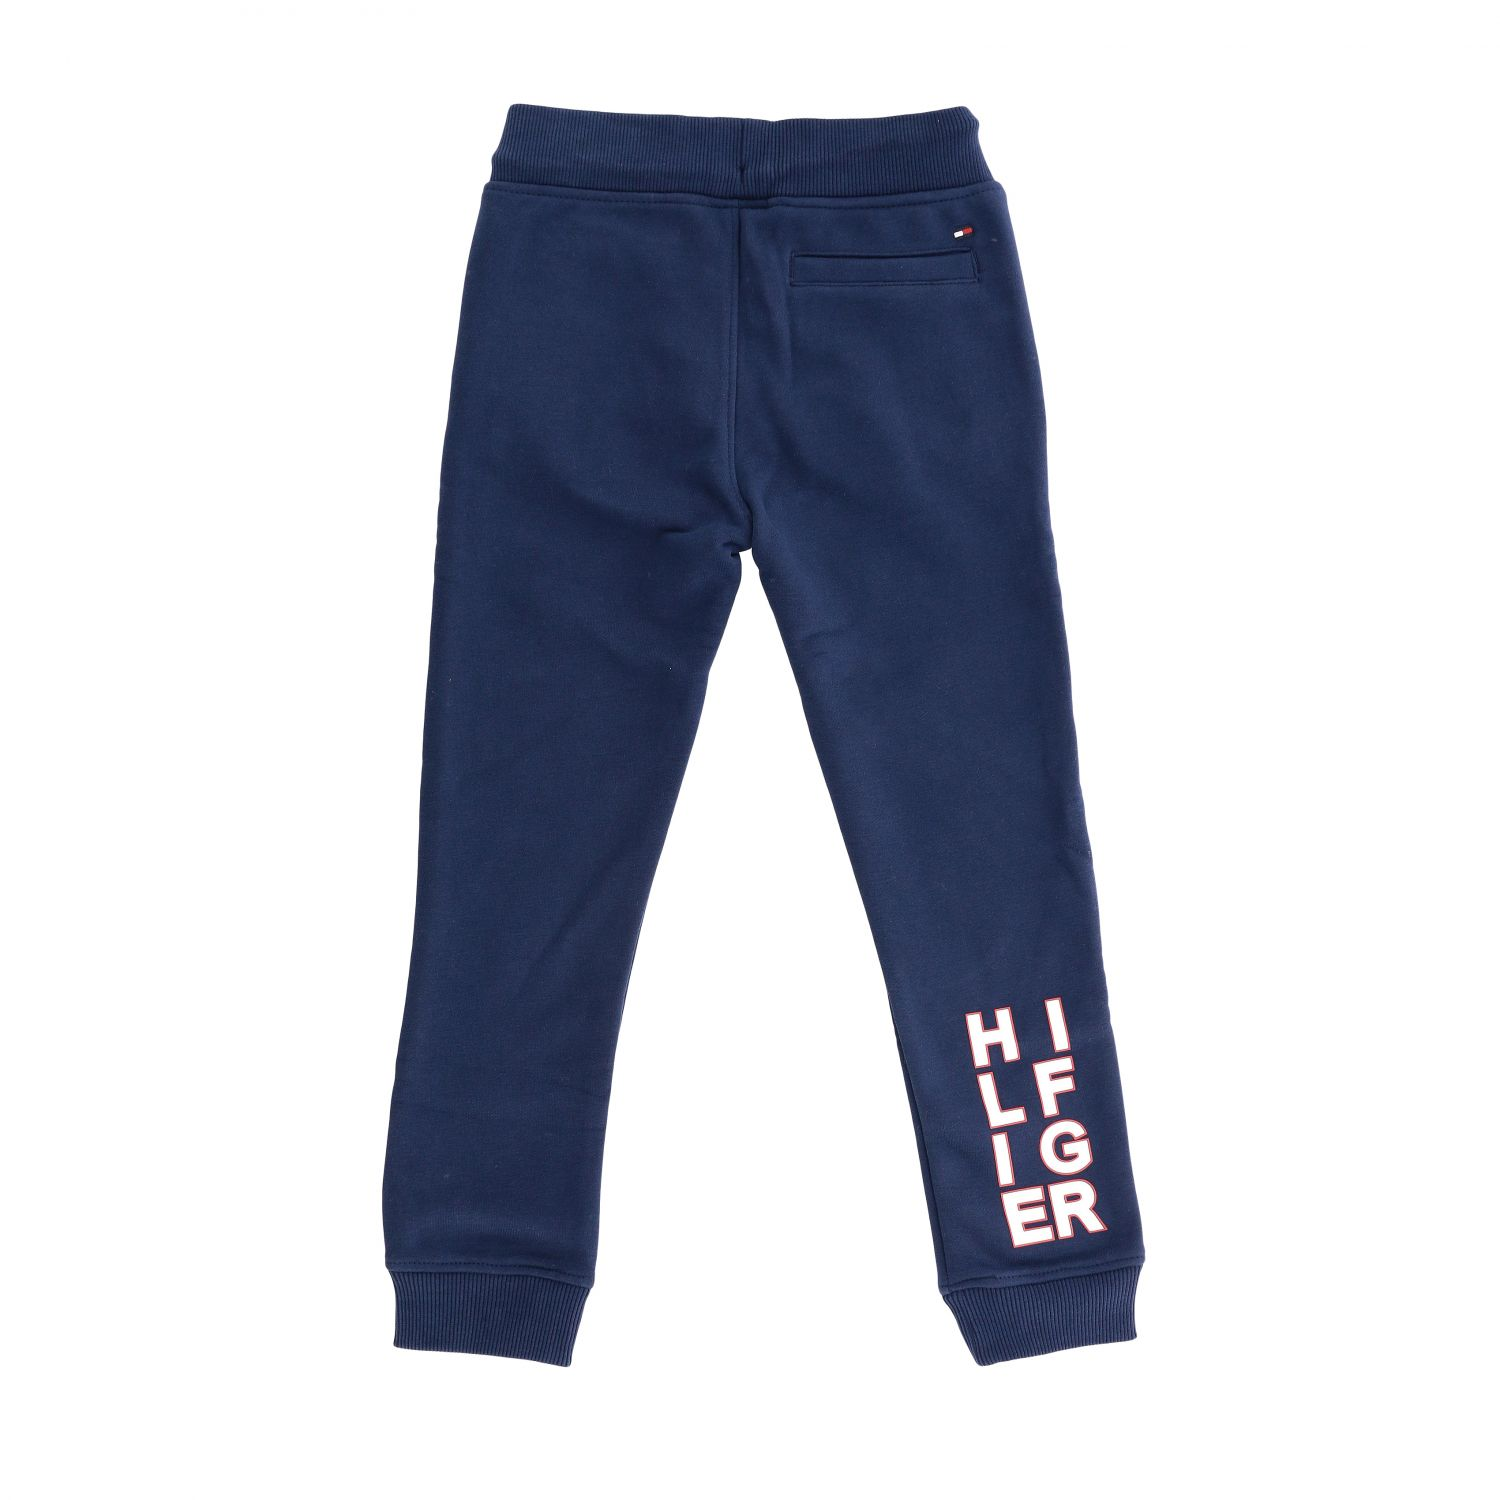 Tommy Hilfiger jogging trousers with logo black 2